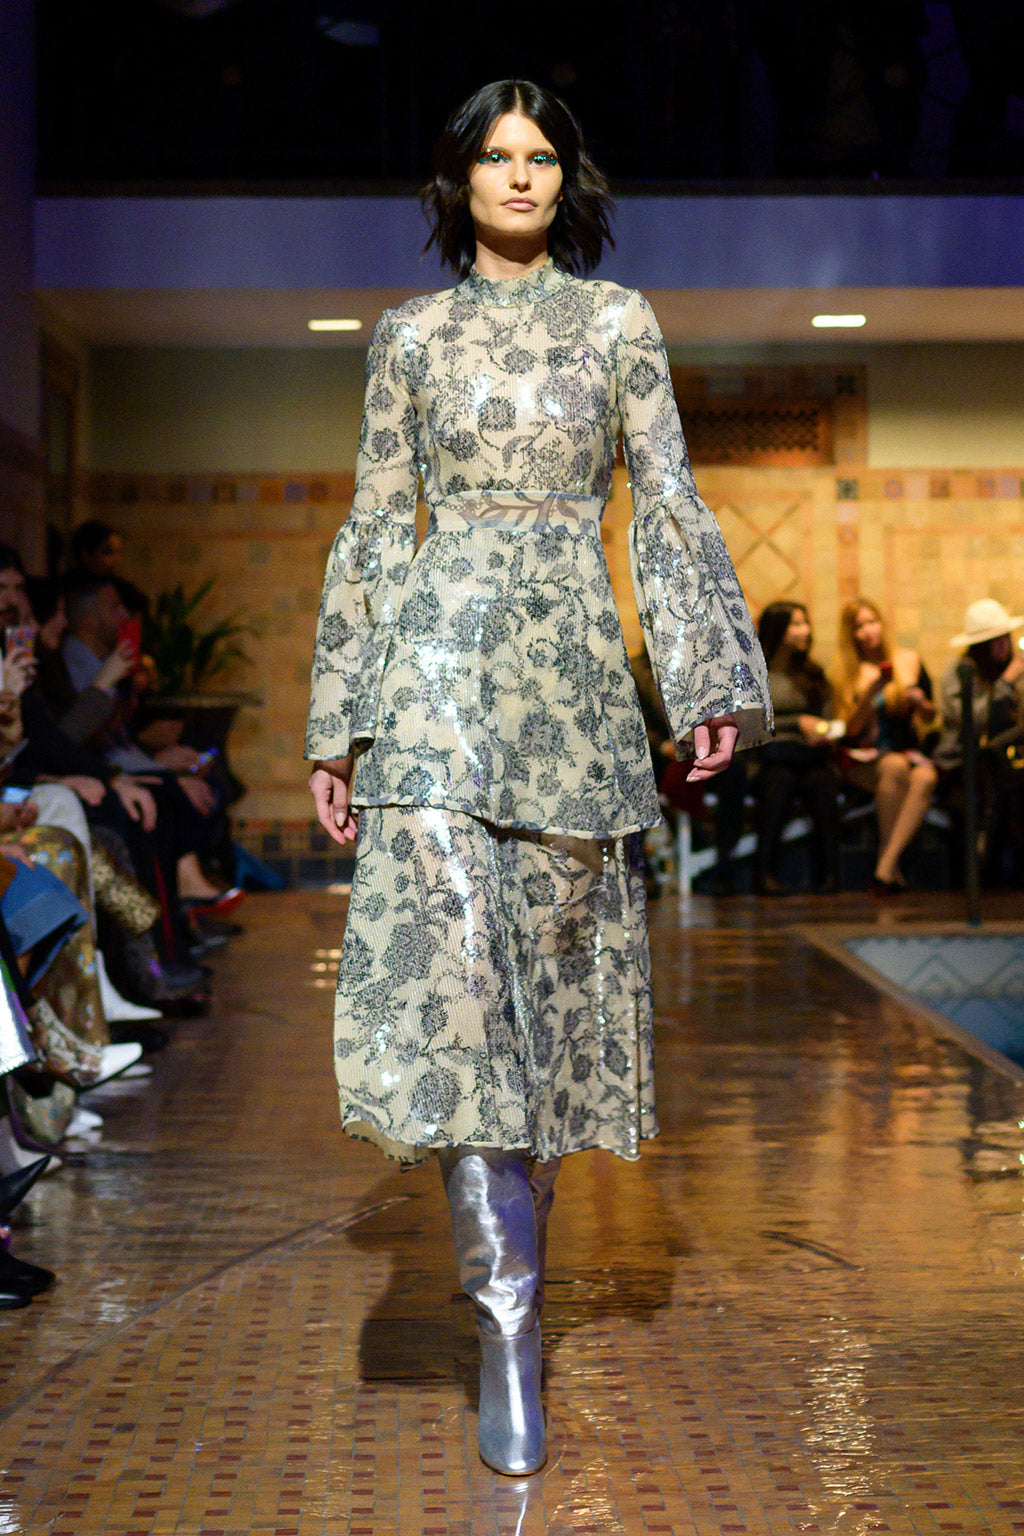 Cynthia Rowley Fall 2019 look 15 featuring a maxi dress with long bell sleeves, a high neck, embroidered print and multiple layers